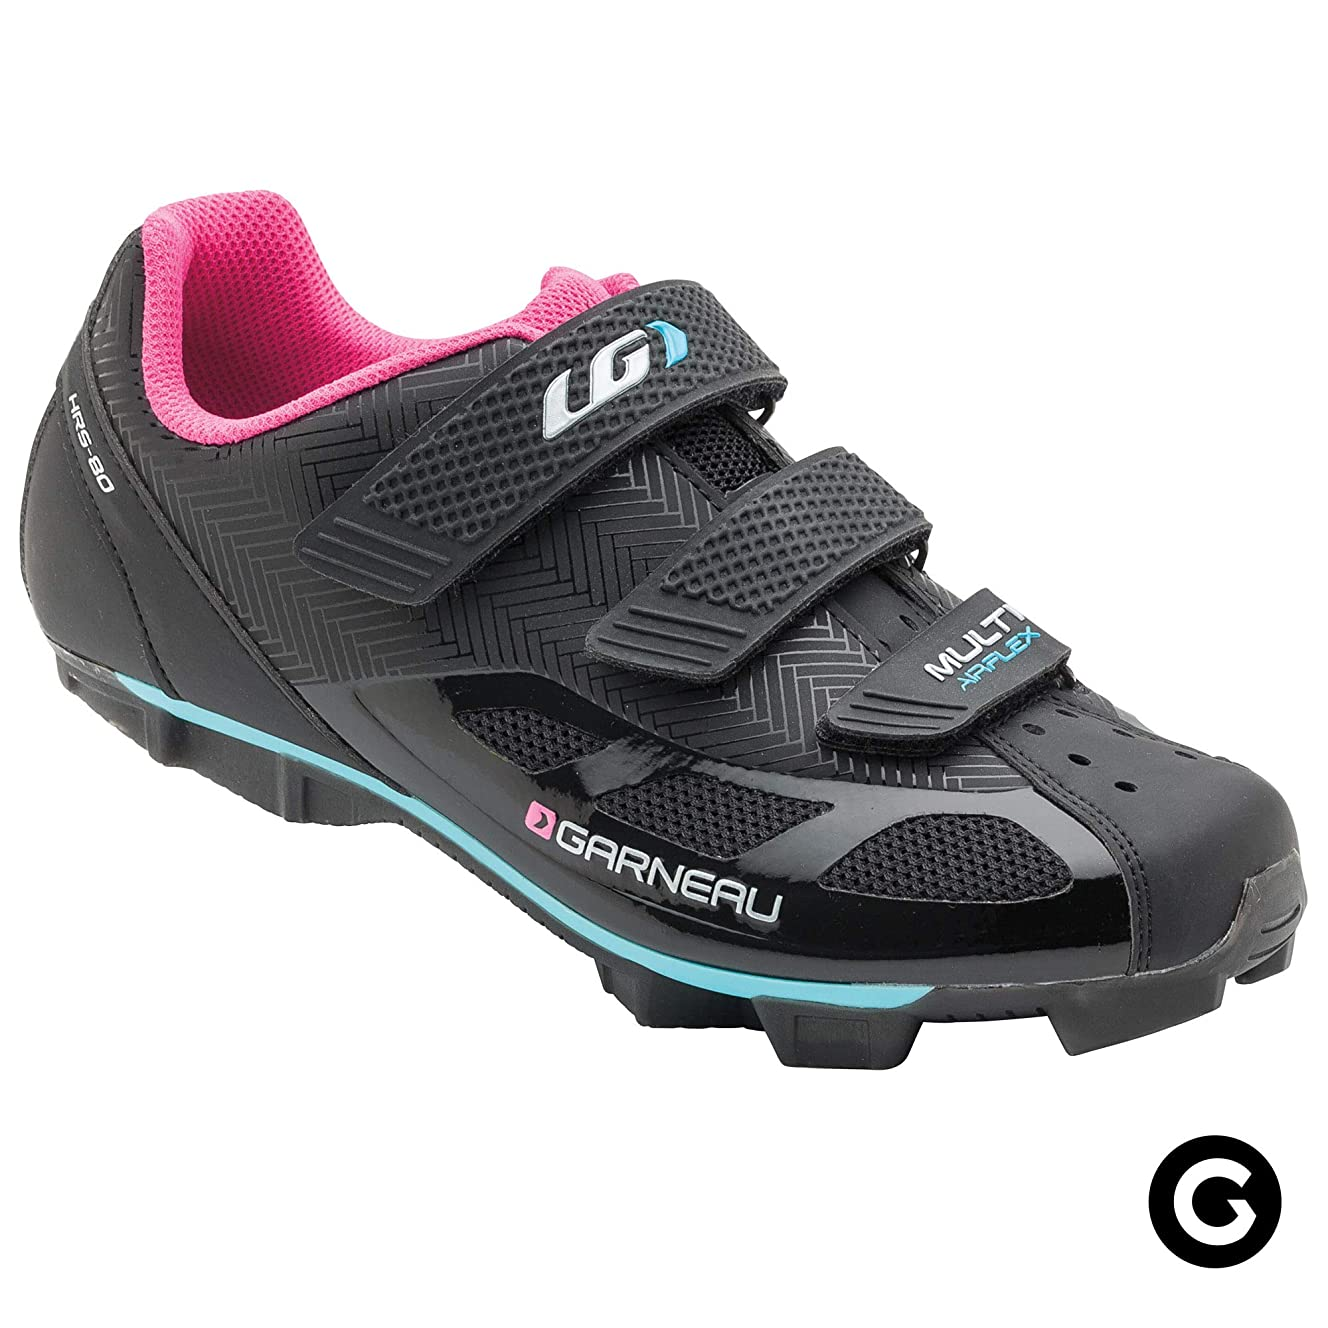 Louis Garneau - Women's Multi Air Flex Bike Shoes for Indoor Cycling, Commuting and MTB, SPD Cleats Compatible with MTB Pedals